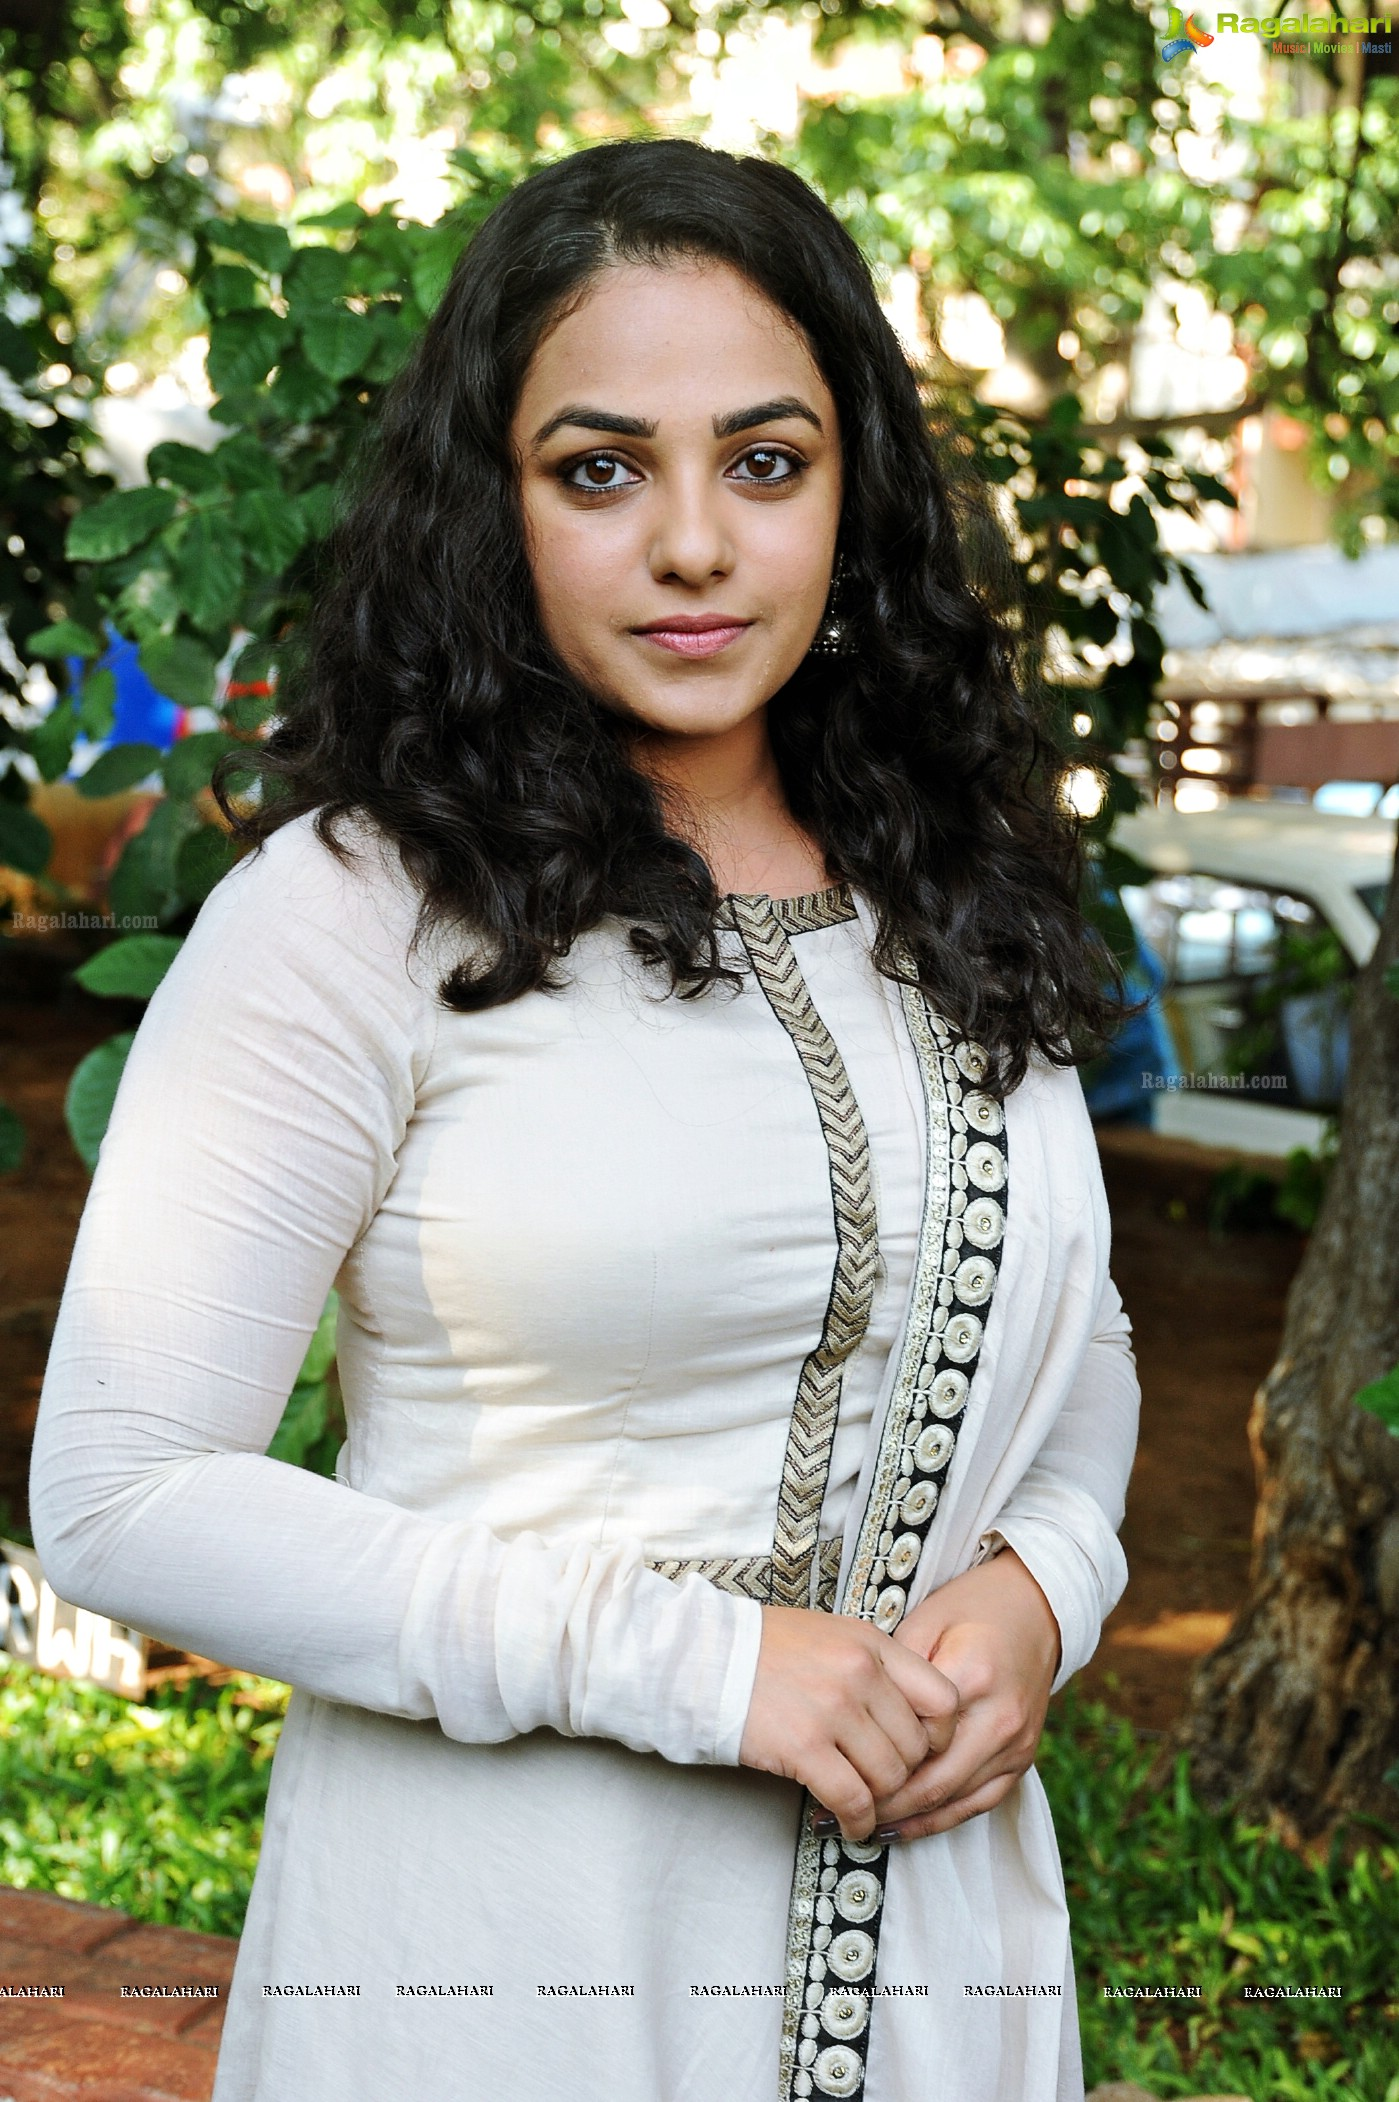 Nithya Menon Posters Image 40 Latest Bollywood Actor Wallpapers